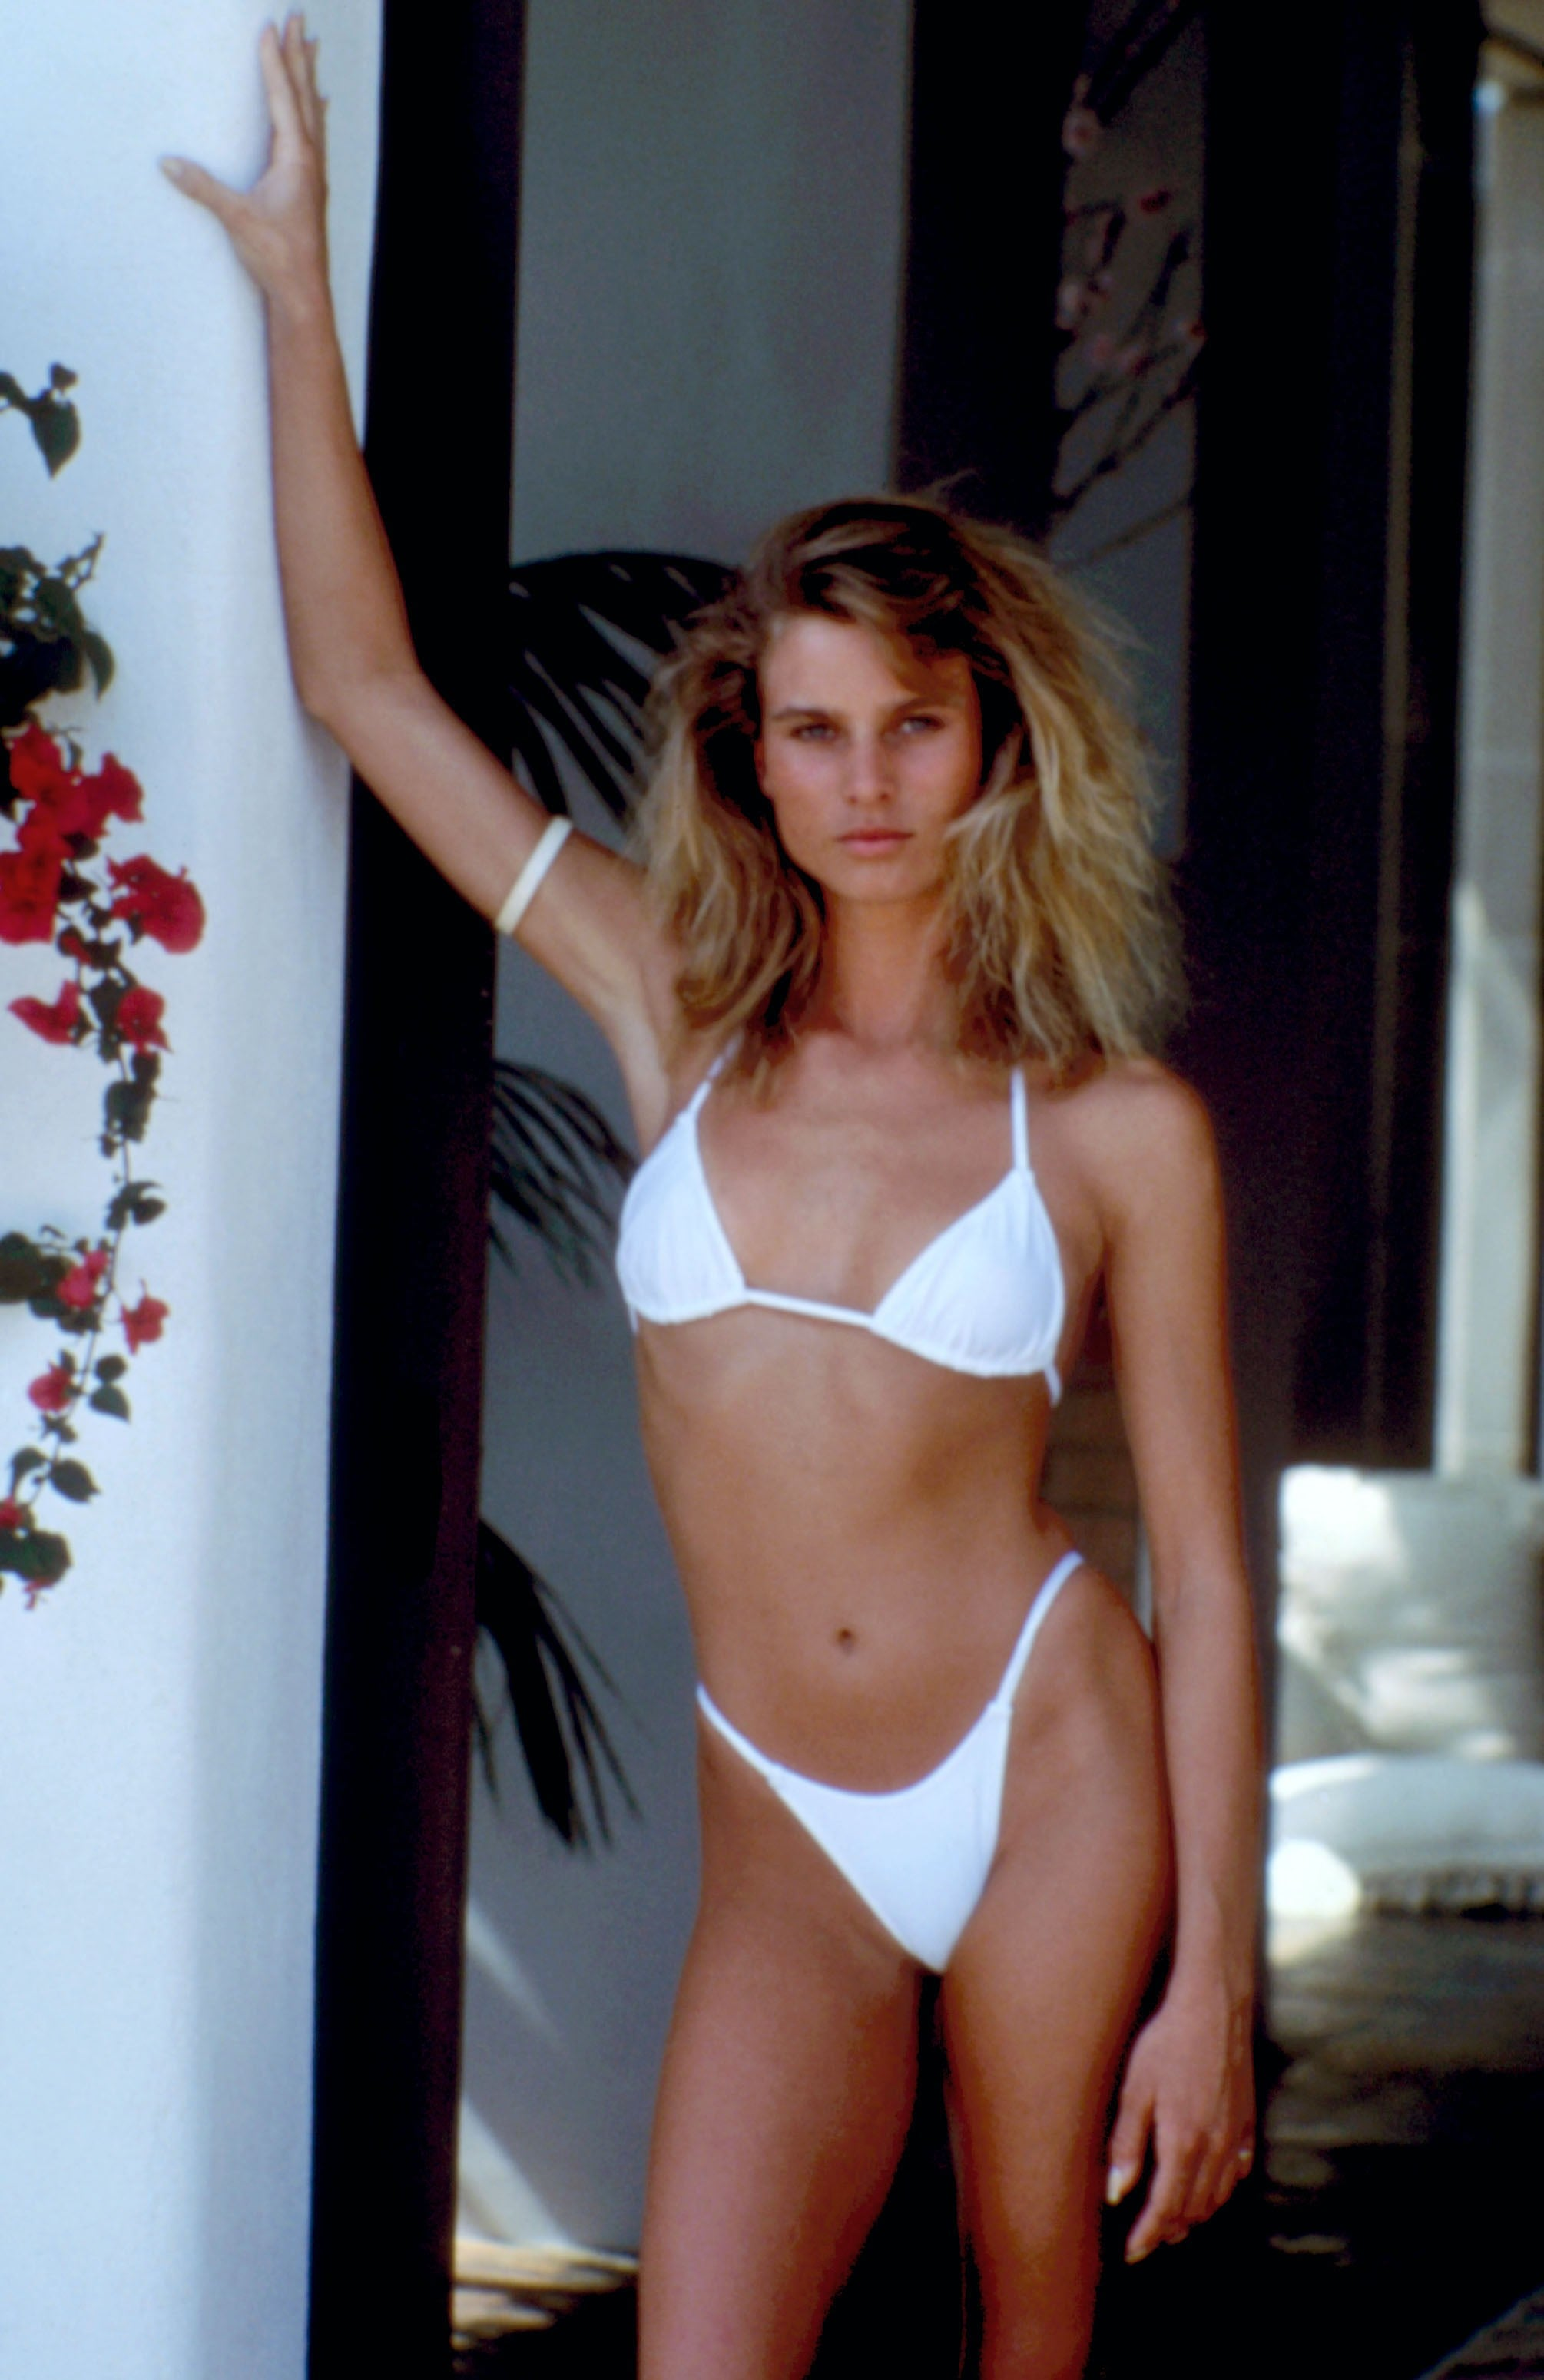 Nicollette Sheridan, The Sure Thing